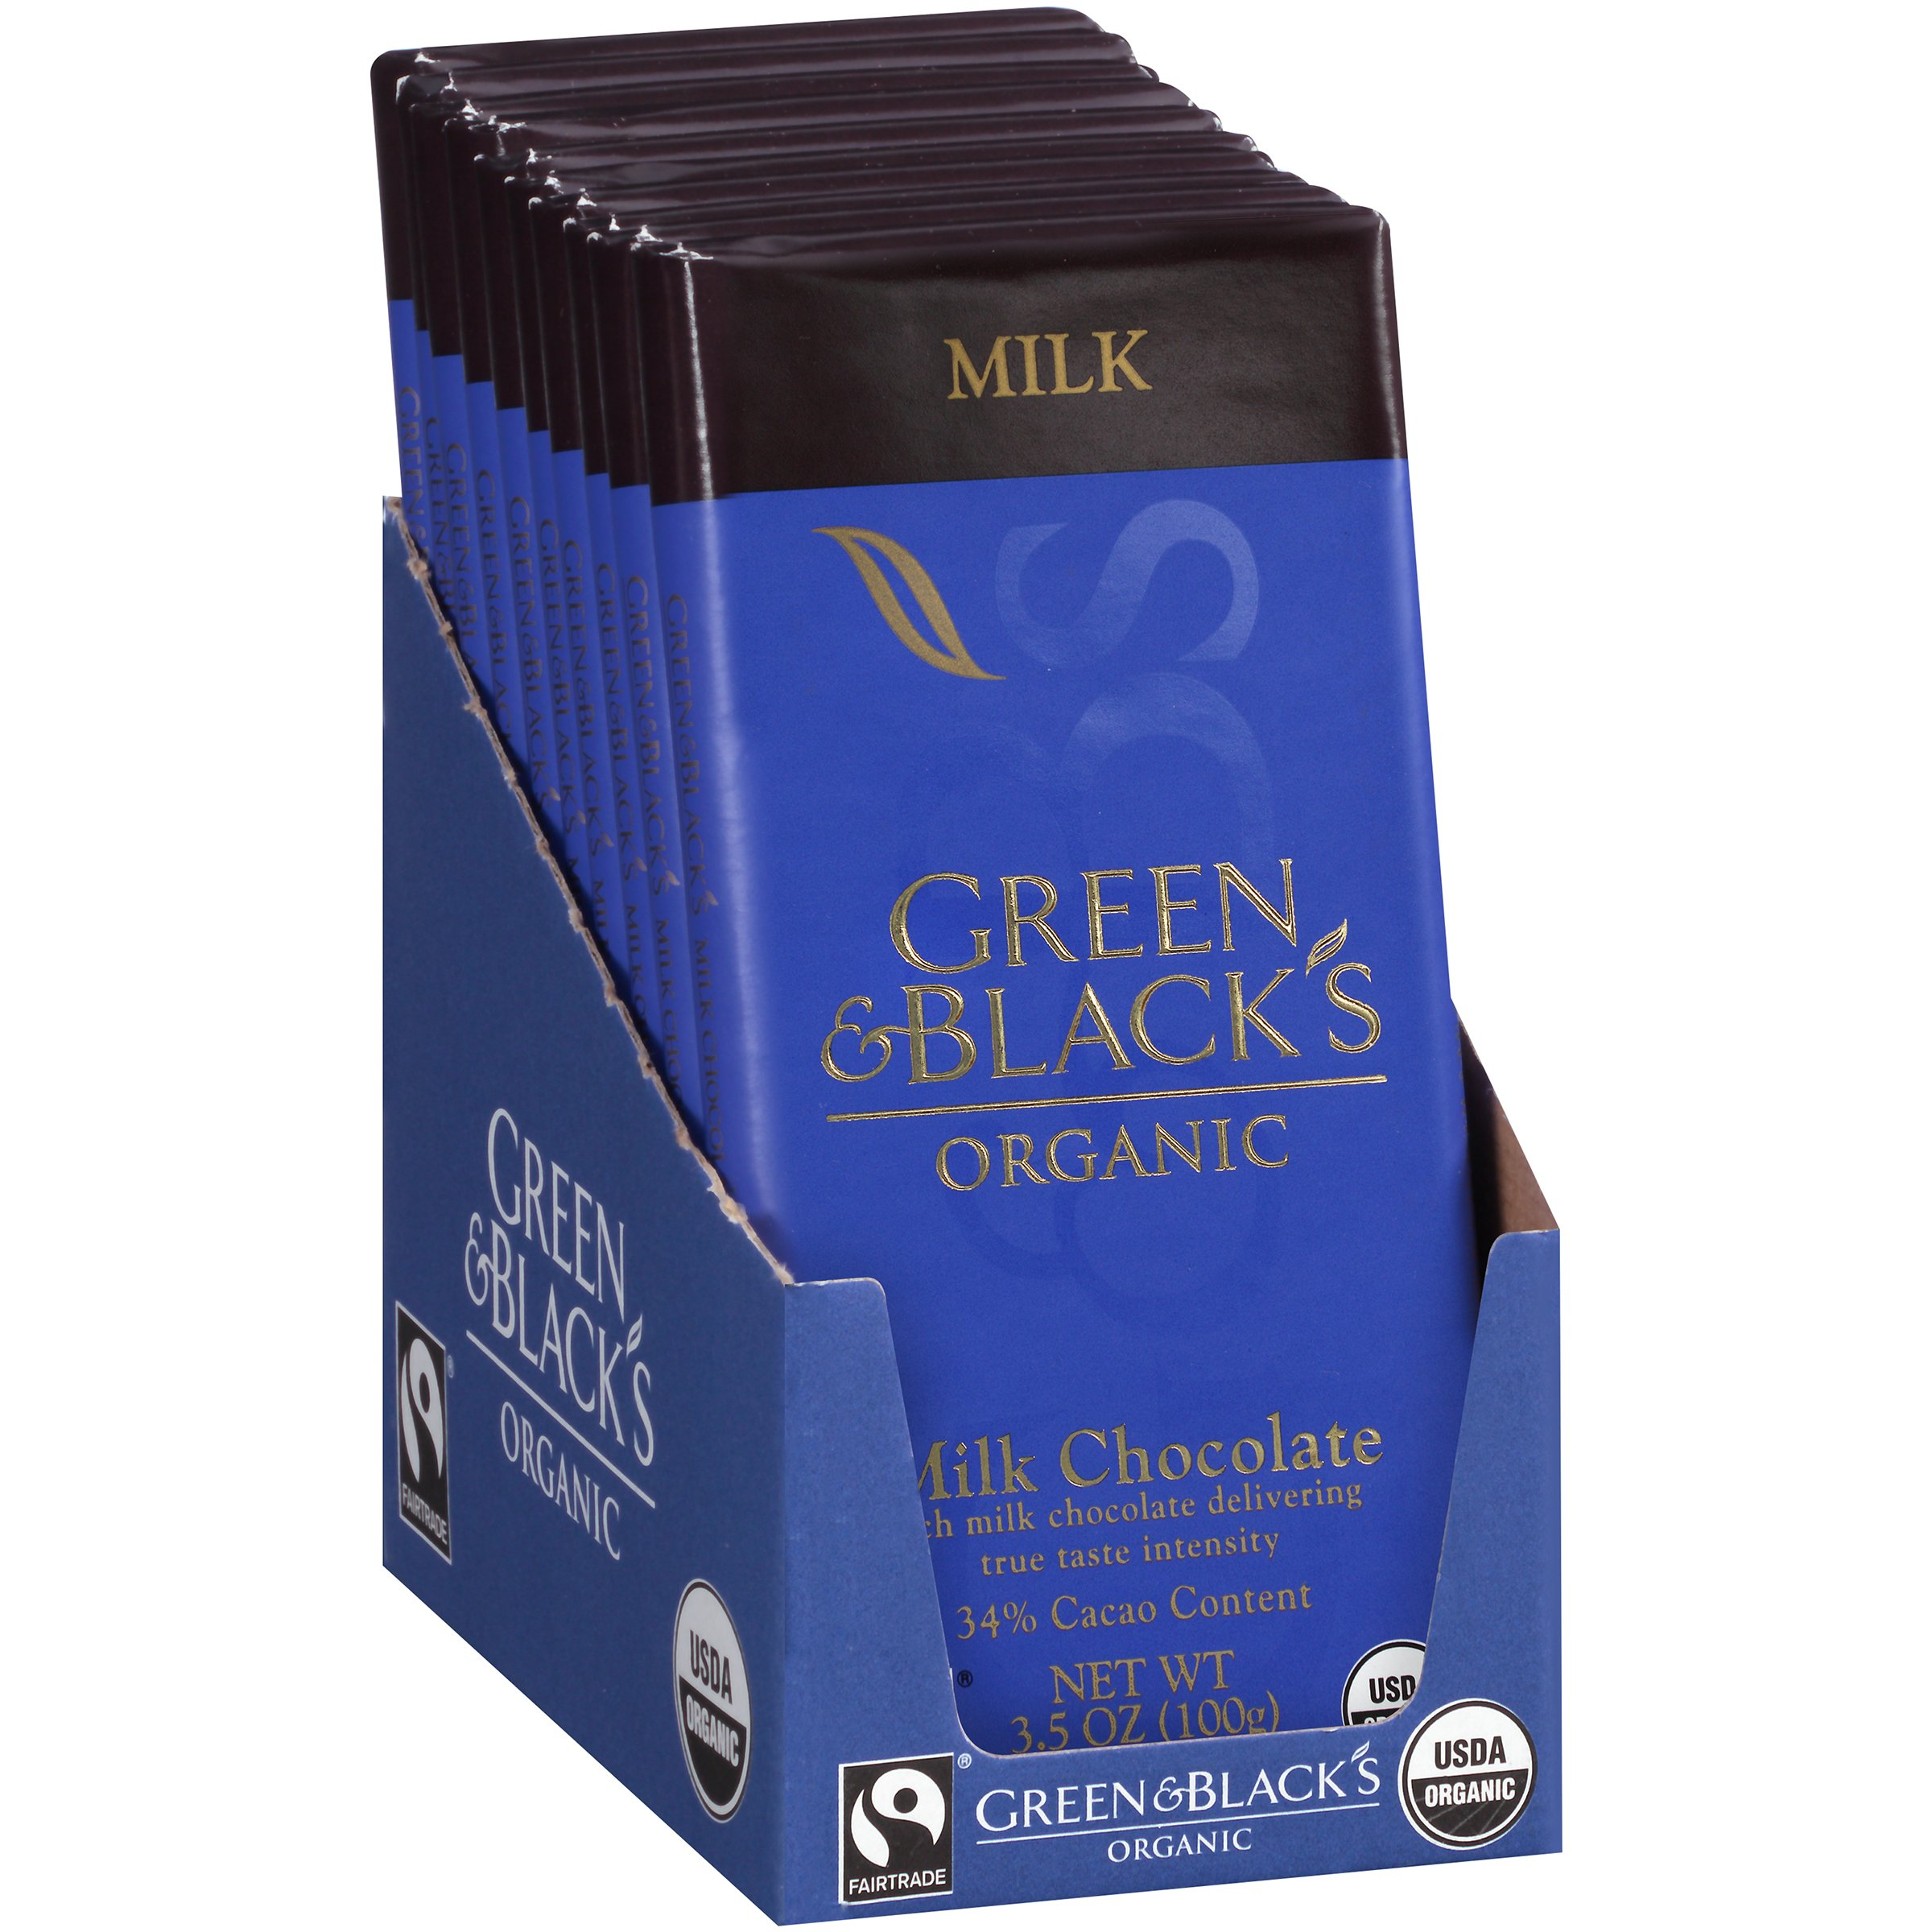 Green & Black's Organic Milk Chocolate, 34% Cacao, 3.5 Ounce Bars,10 count by Green & Black's